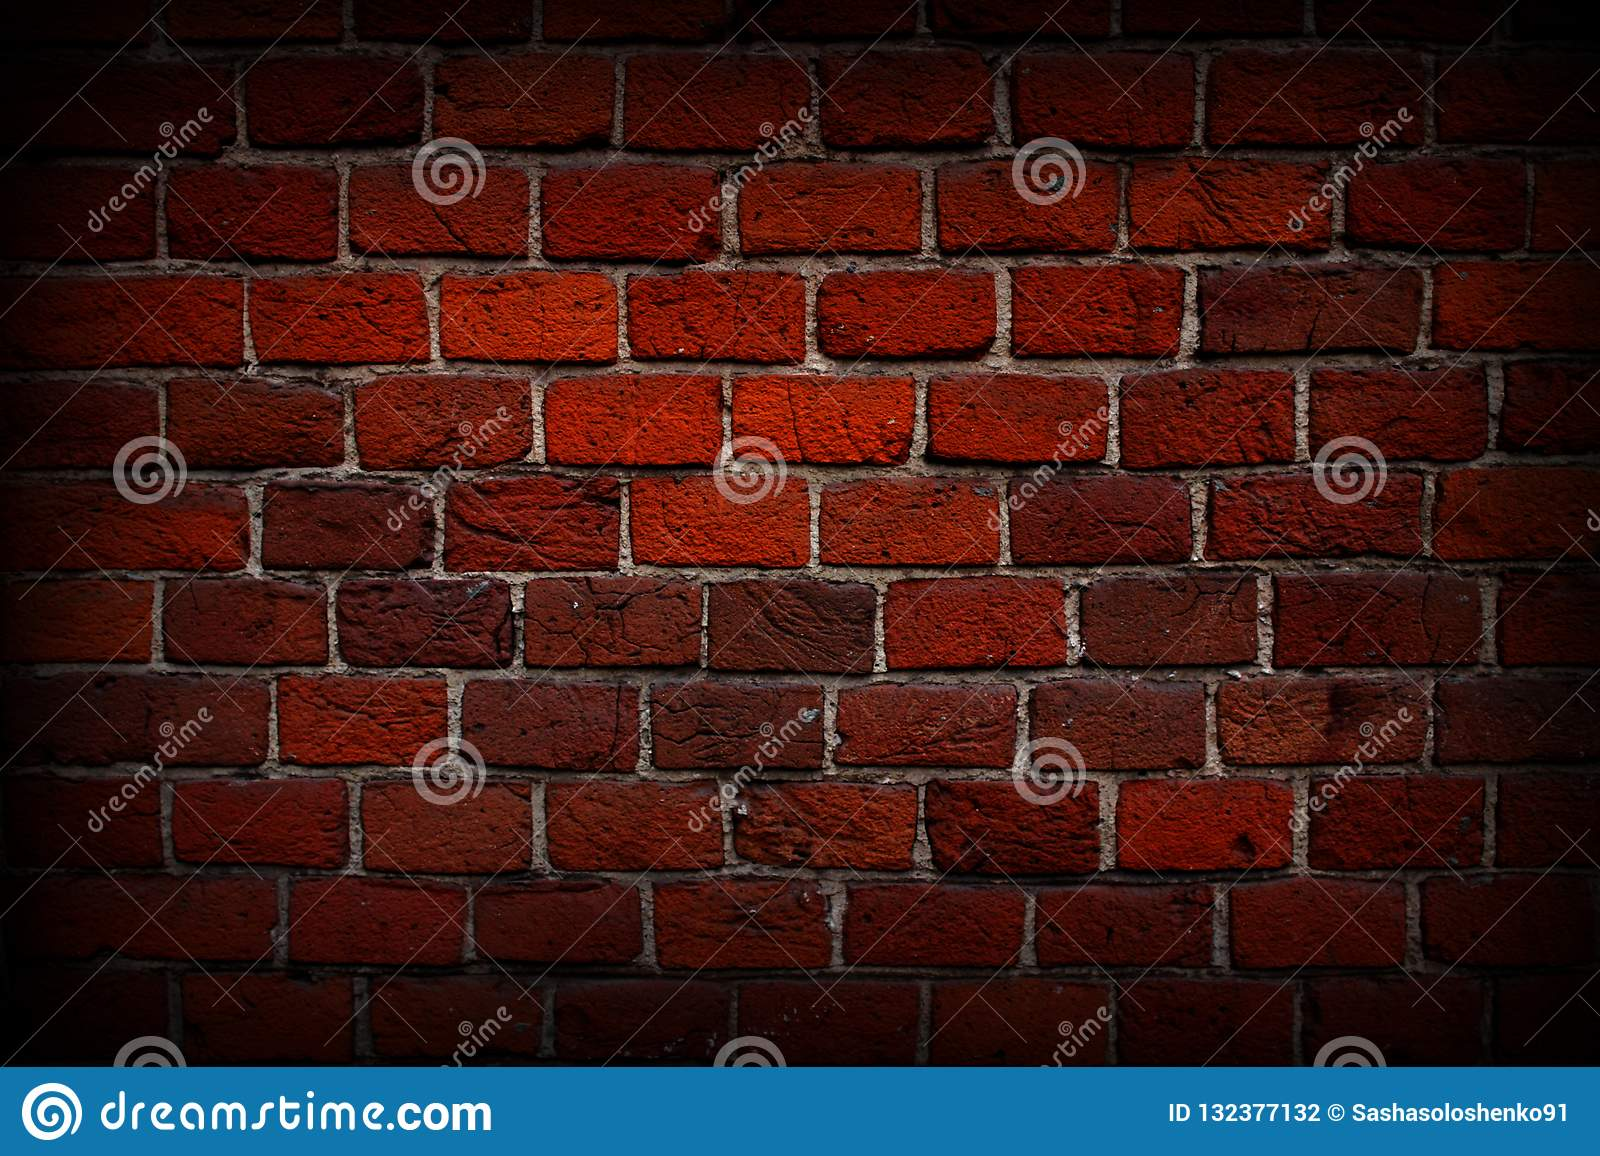 Red brick wall close-up, texture, background, grunge.